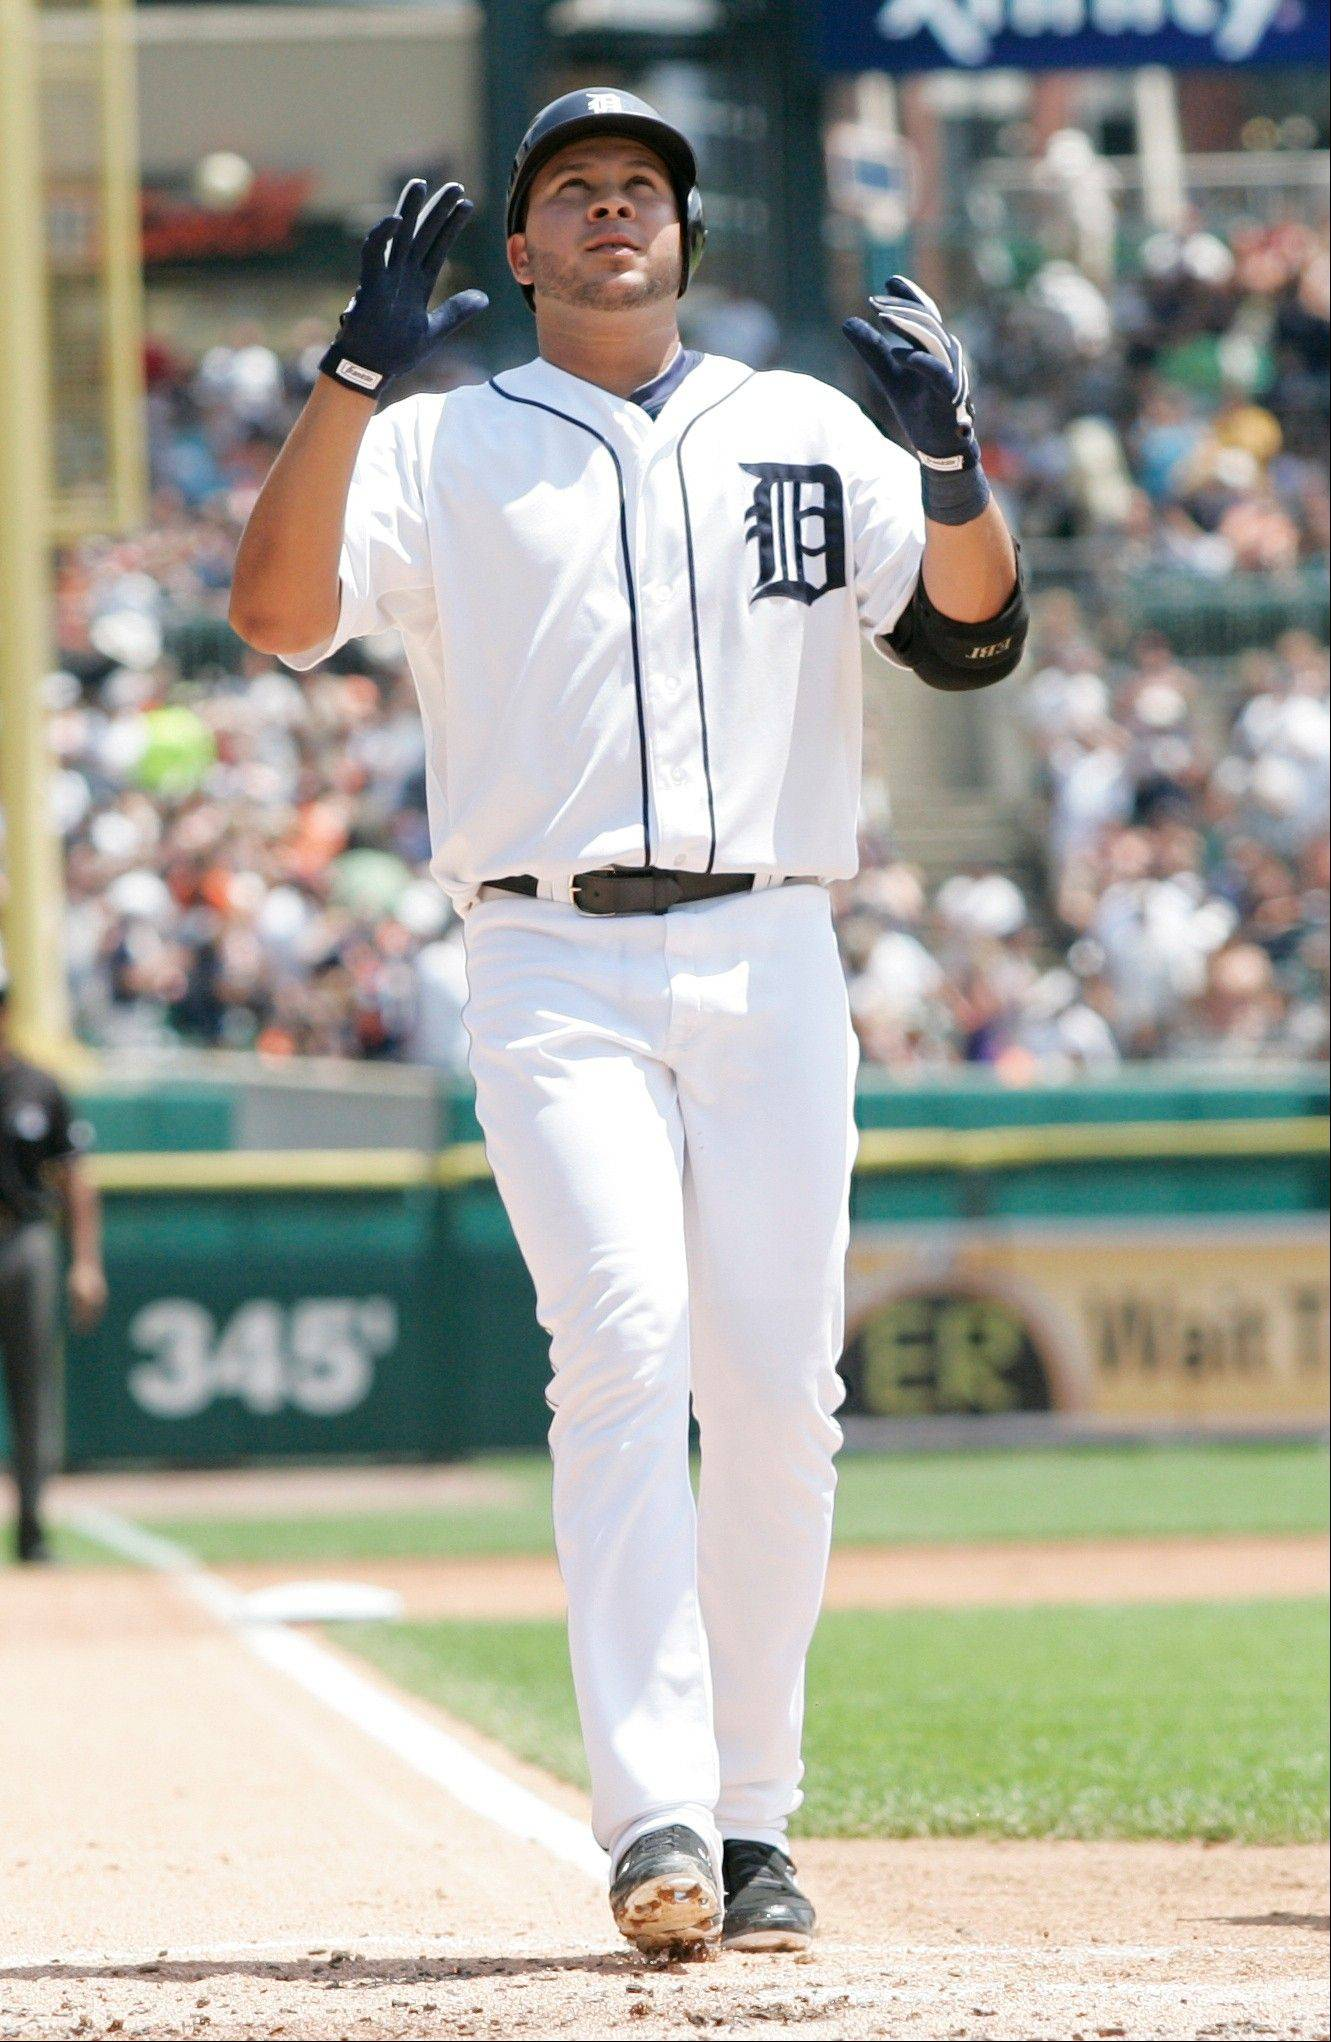 The Tigers' Jhonny Peralta crosses home plate after hitting a two-run home run against the Kansas City in the second inning Sunday in Detroit.